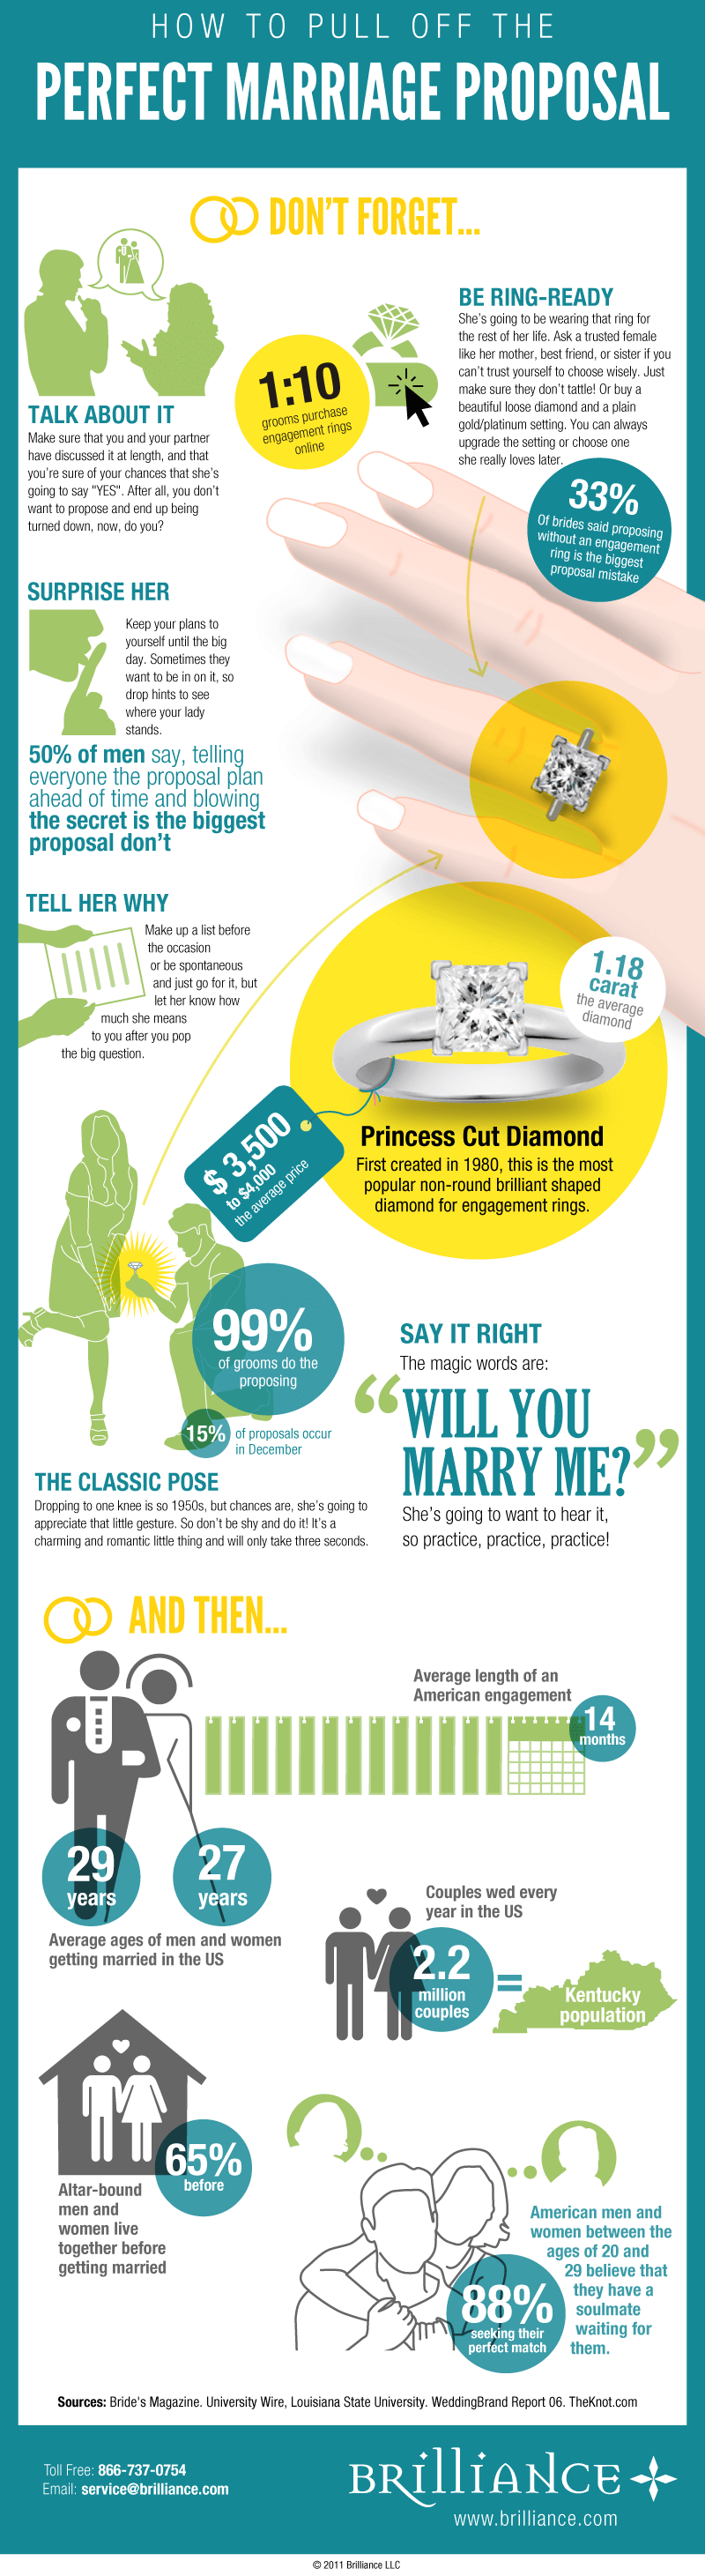 Finally, an article that walks you step by step how to execute the perfect proposal. From finding the right location, buying the perfect ring, and knowing what to say this guide has it all. Can't wait to see if my boyfriend can pull this off! Pinning this for later! #Proposal #Engagement #Beach #Romantic #FutureHusband #Love